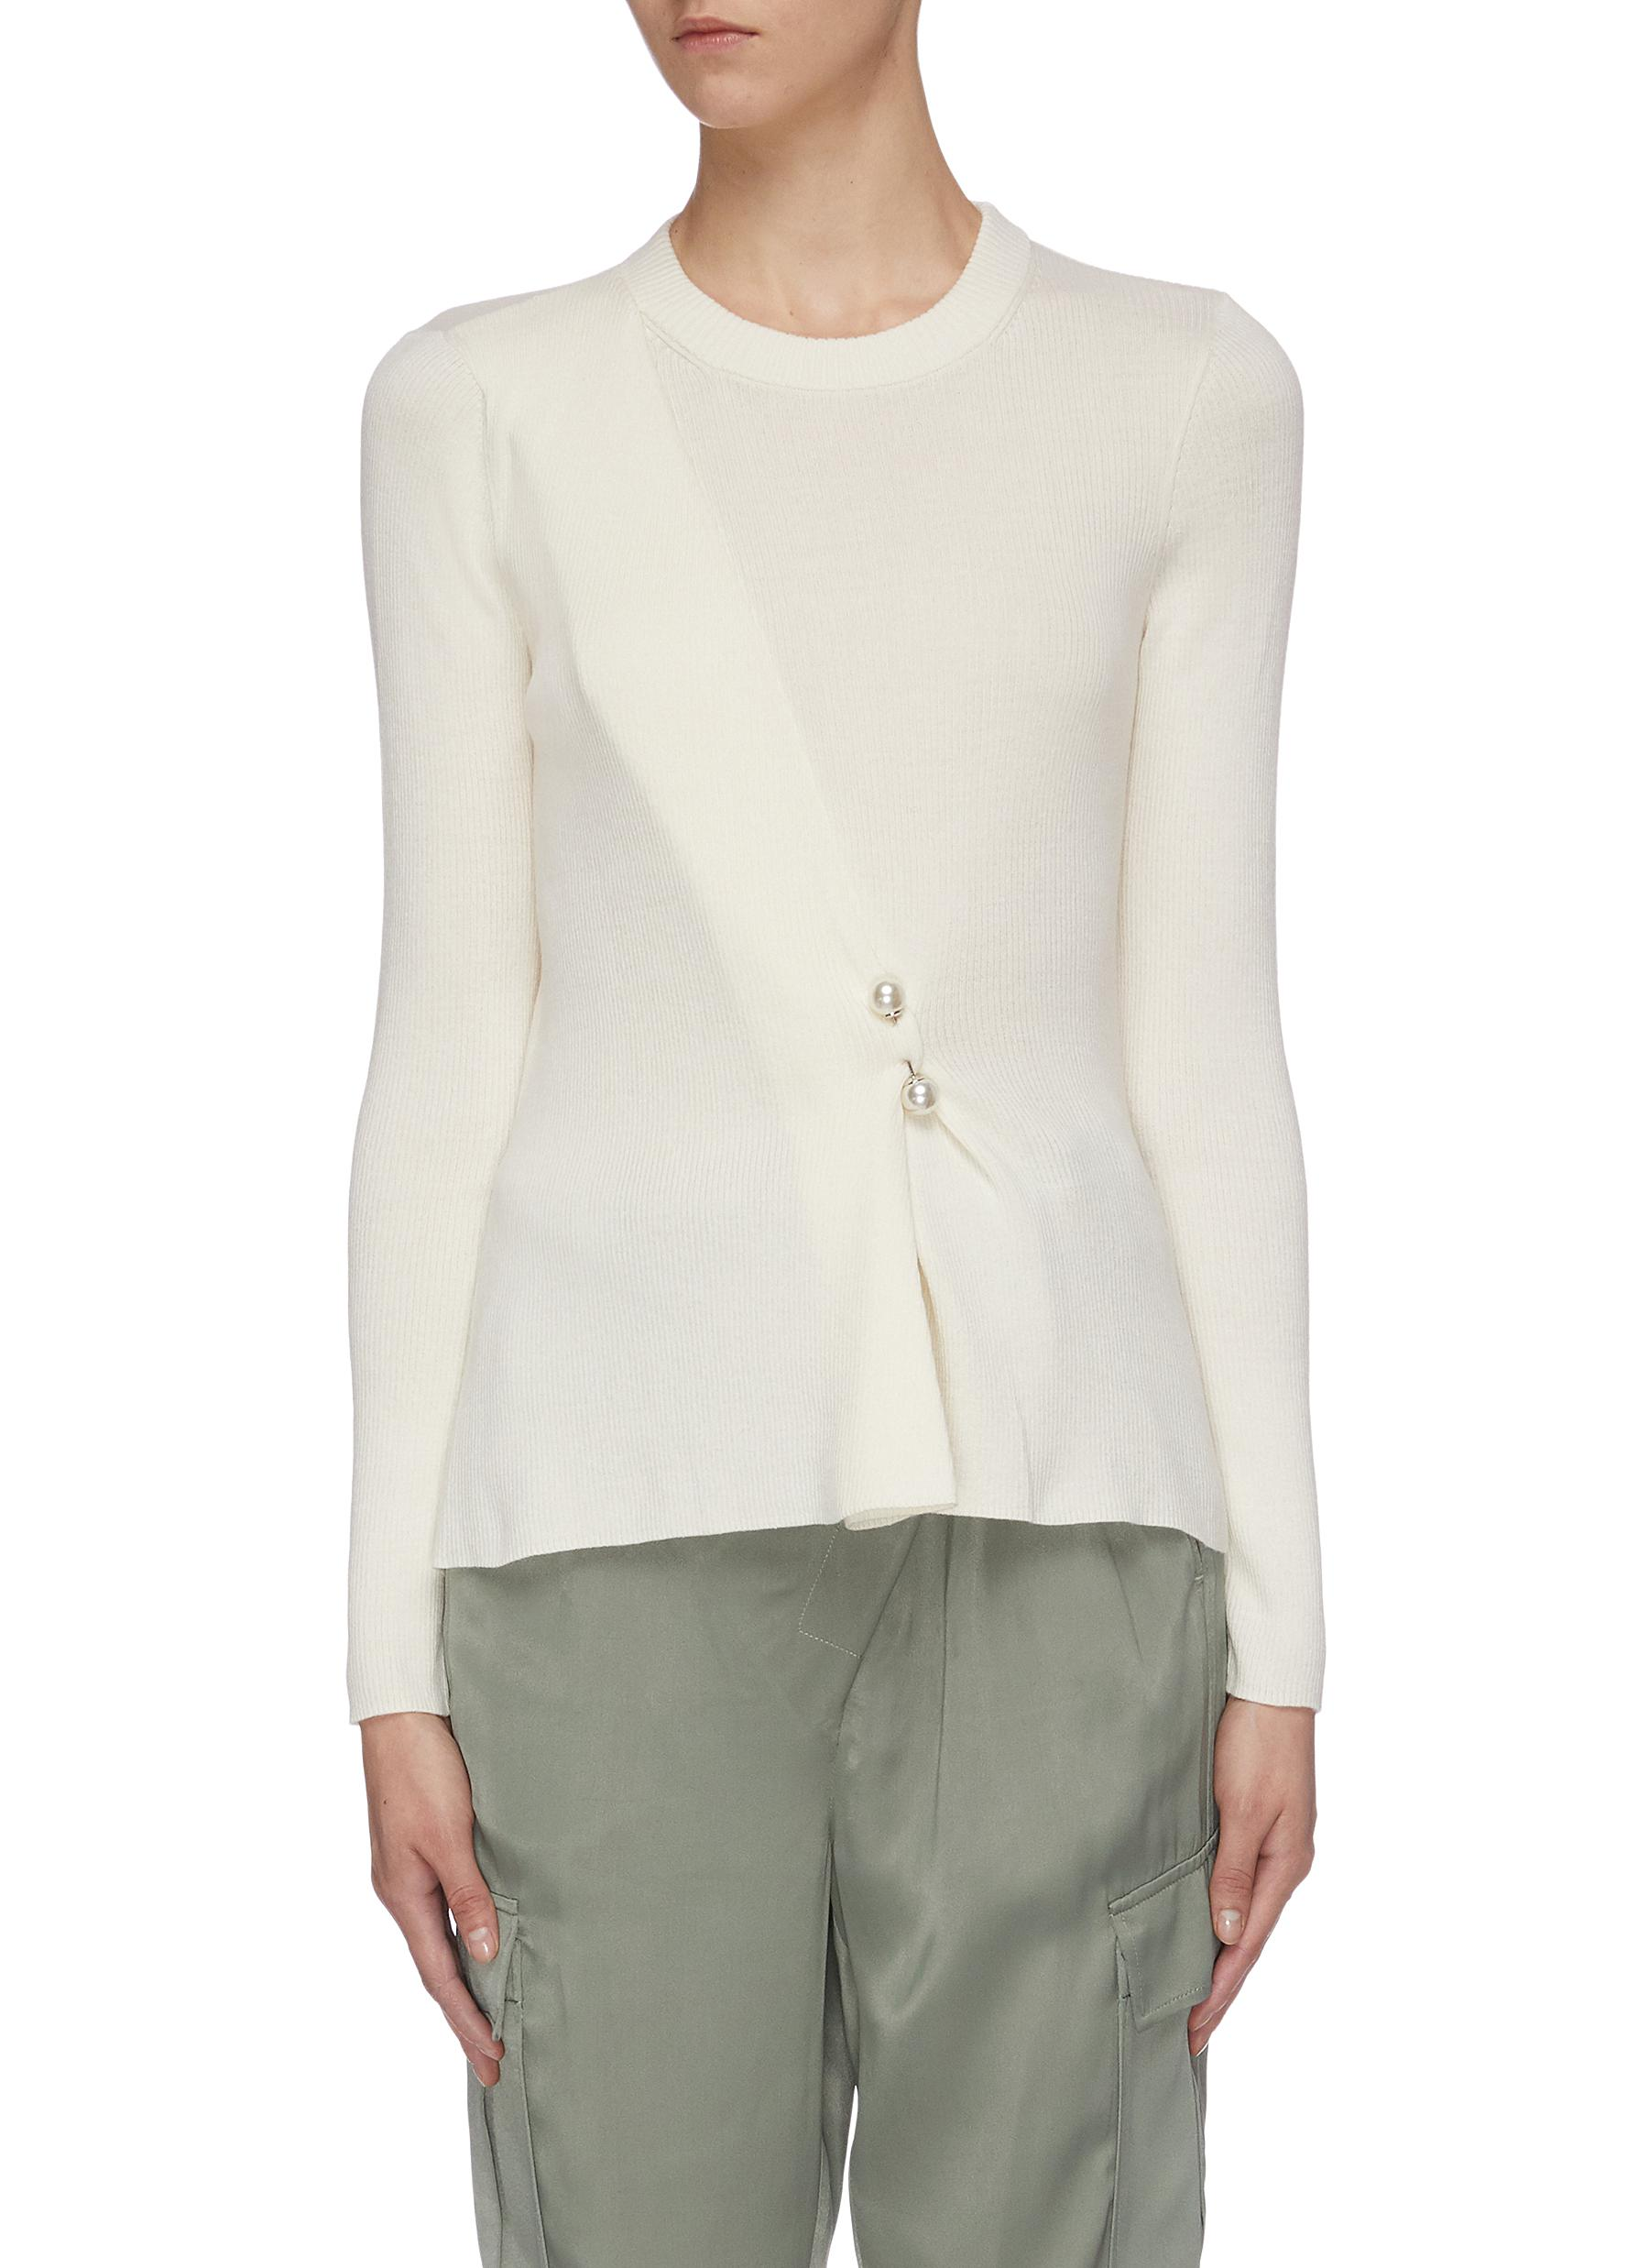 Faux pearl pin sweater by 3.1 Phillip Lim